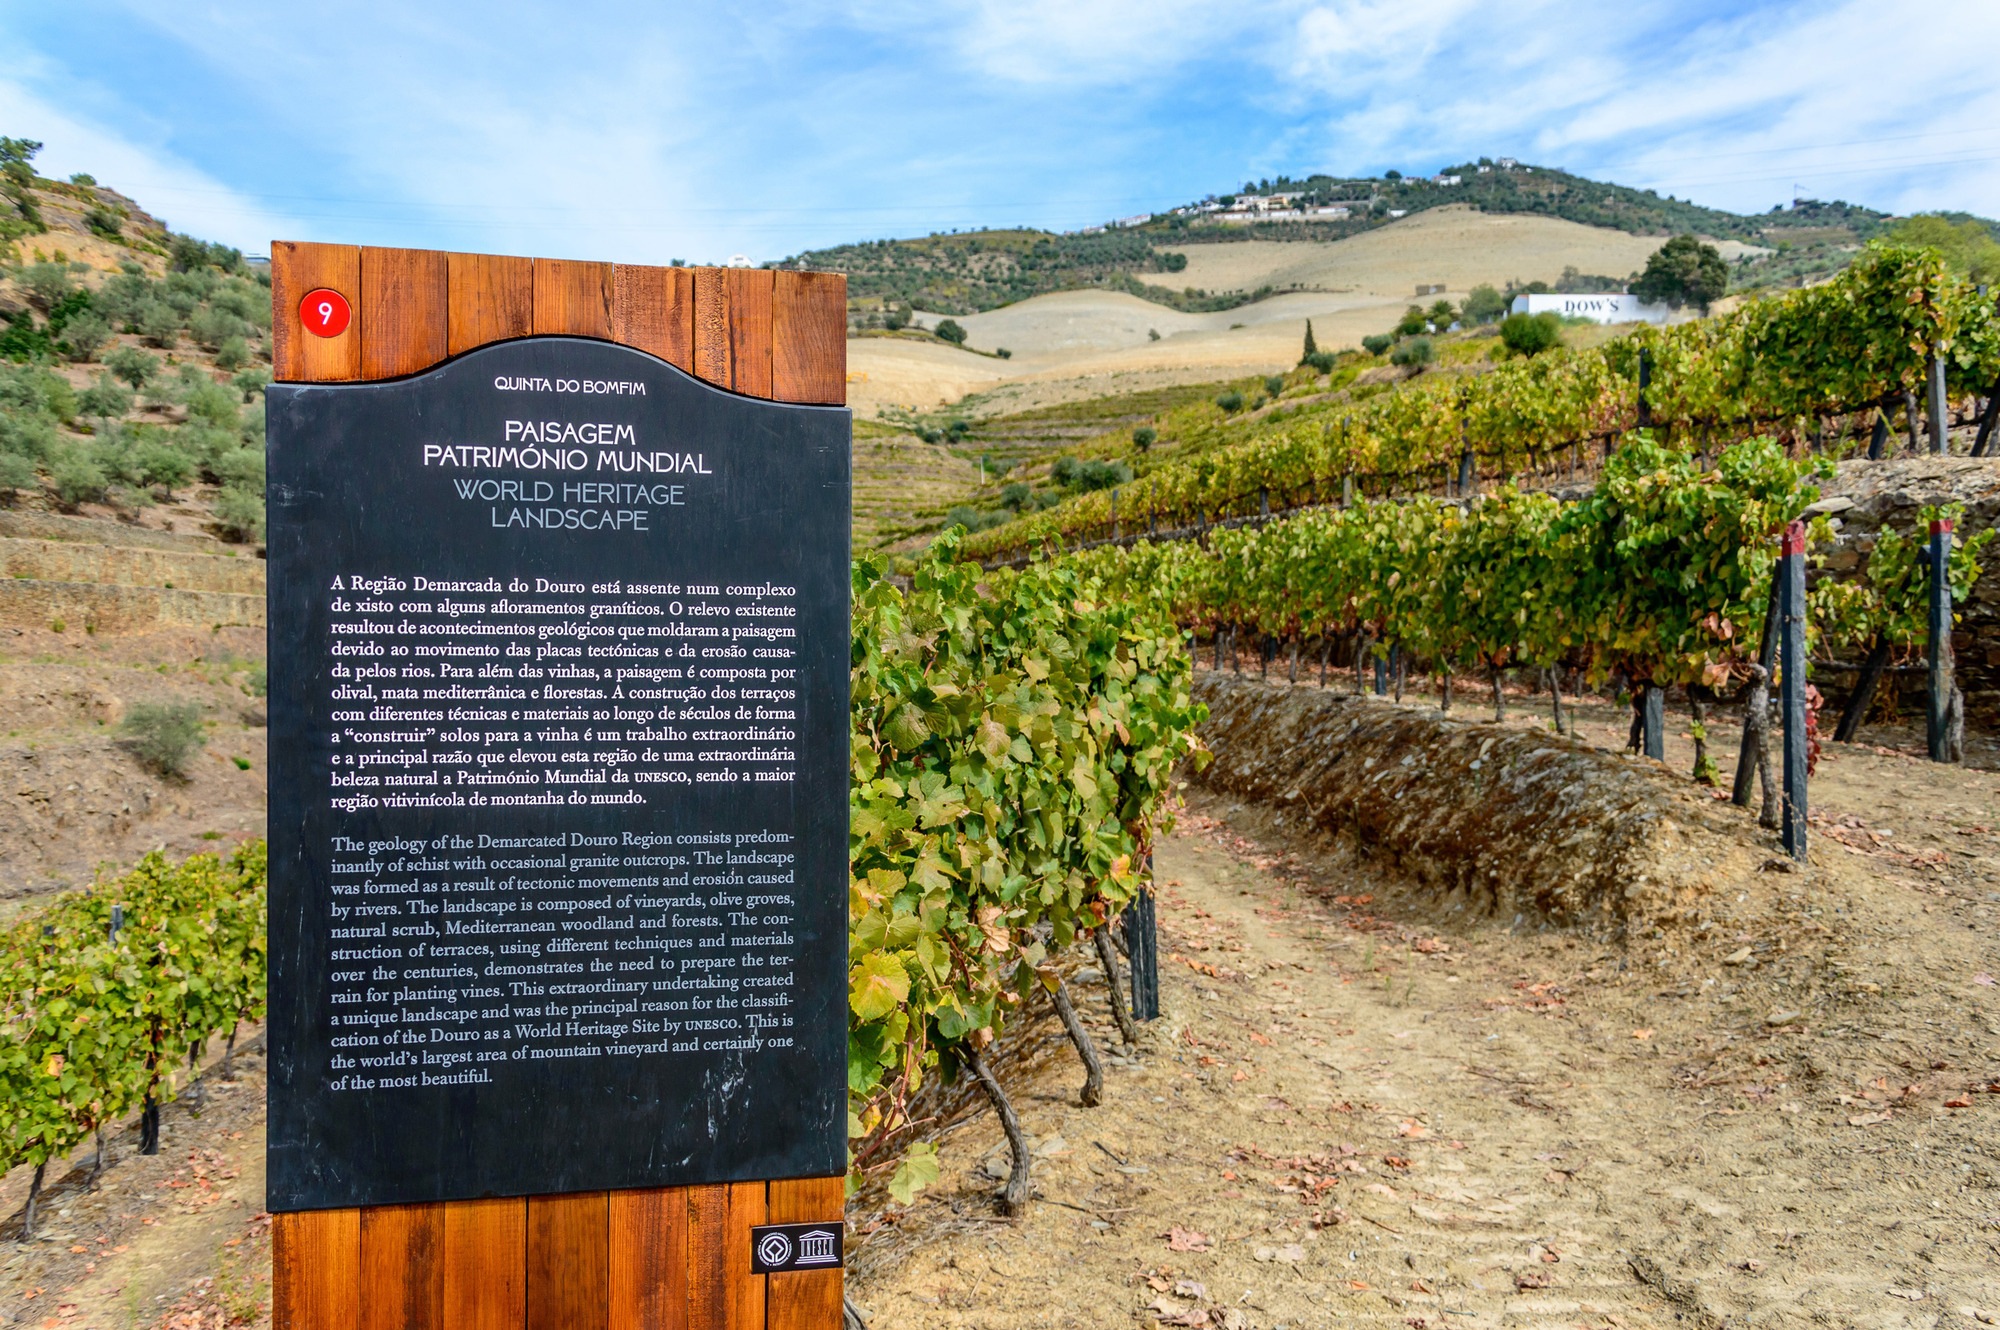 The vineyard walks are among the highlights of the visit